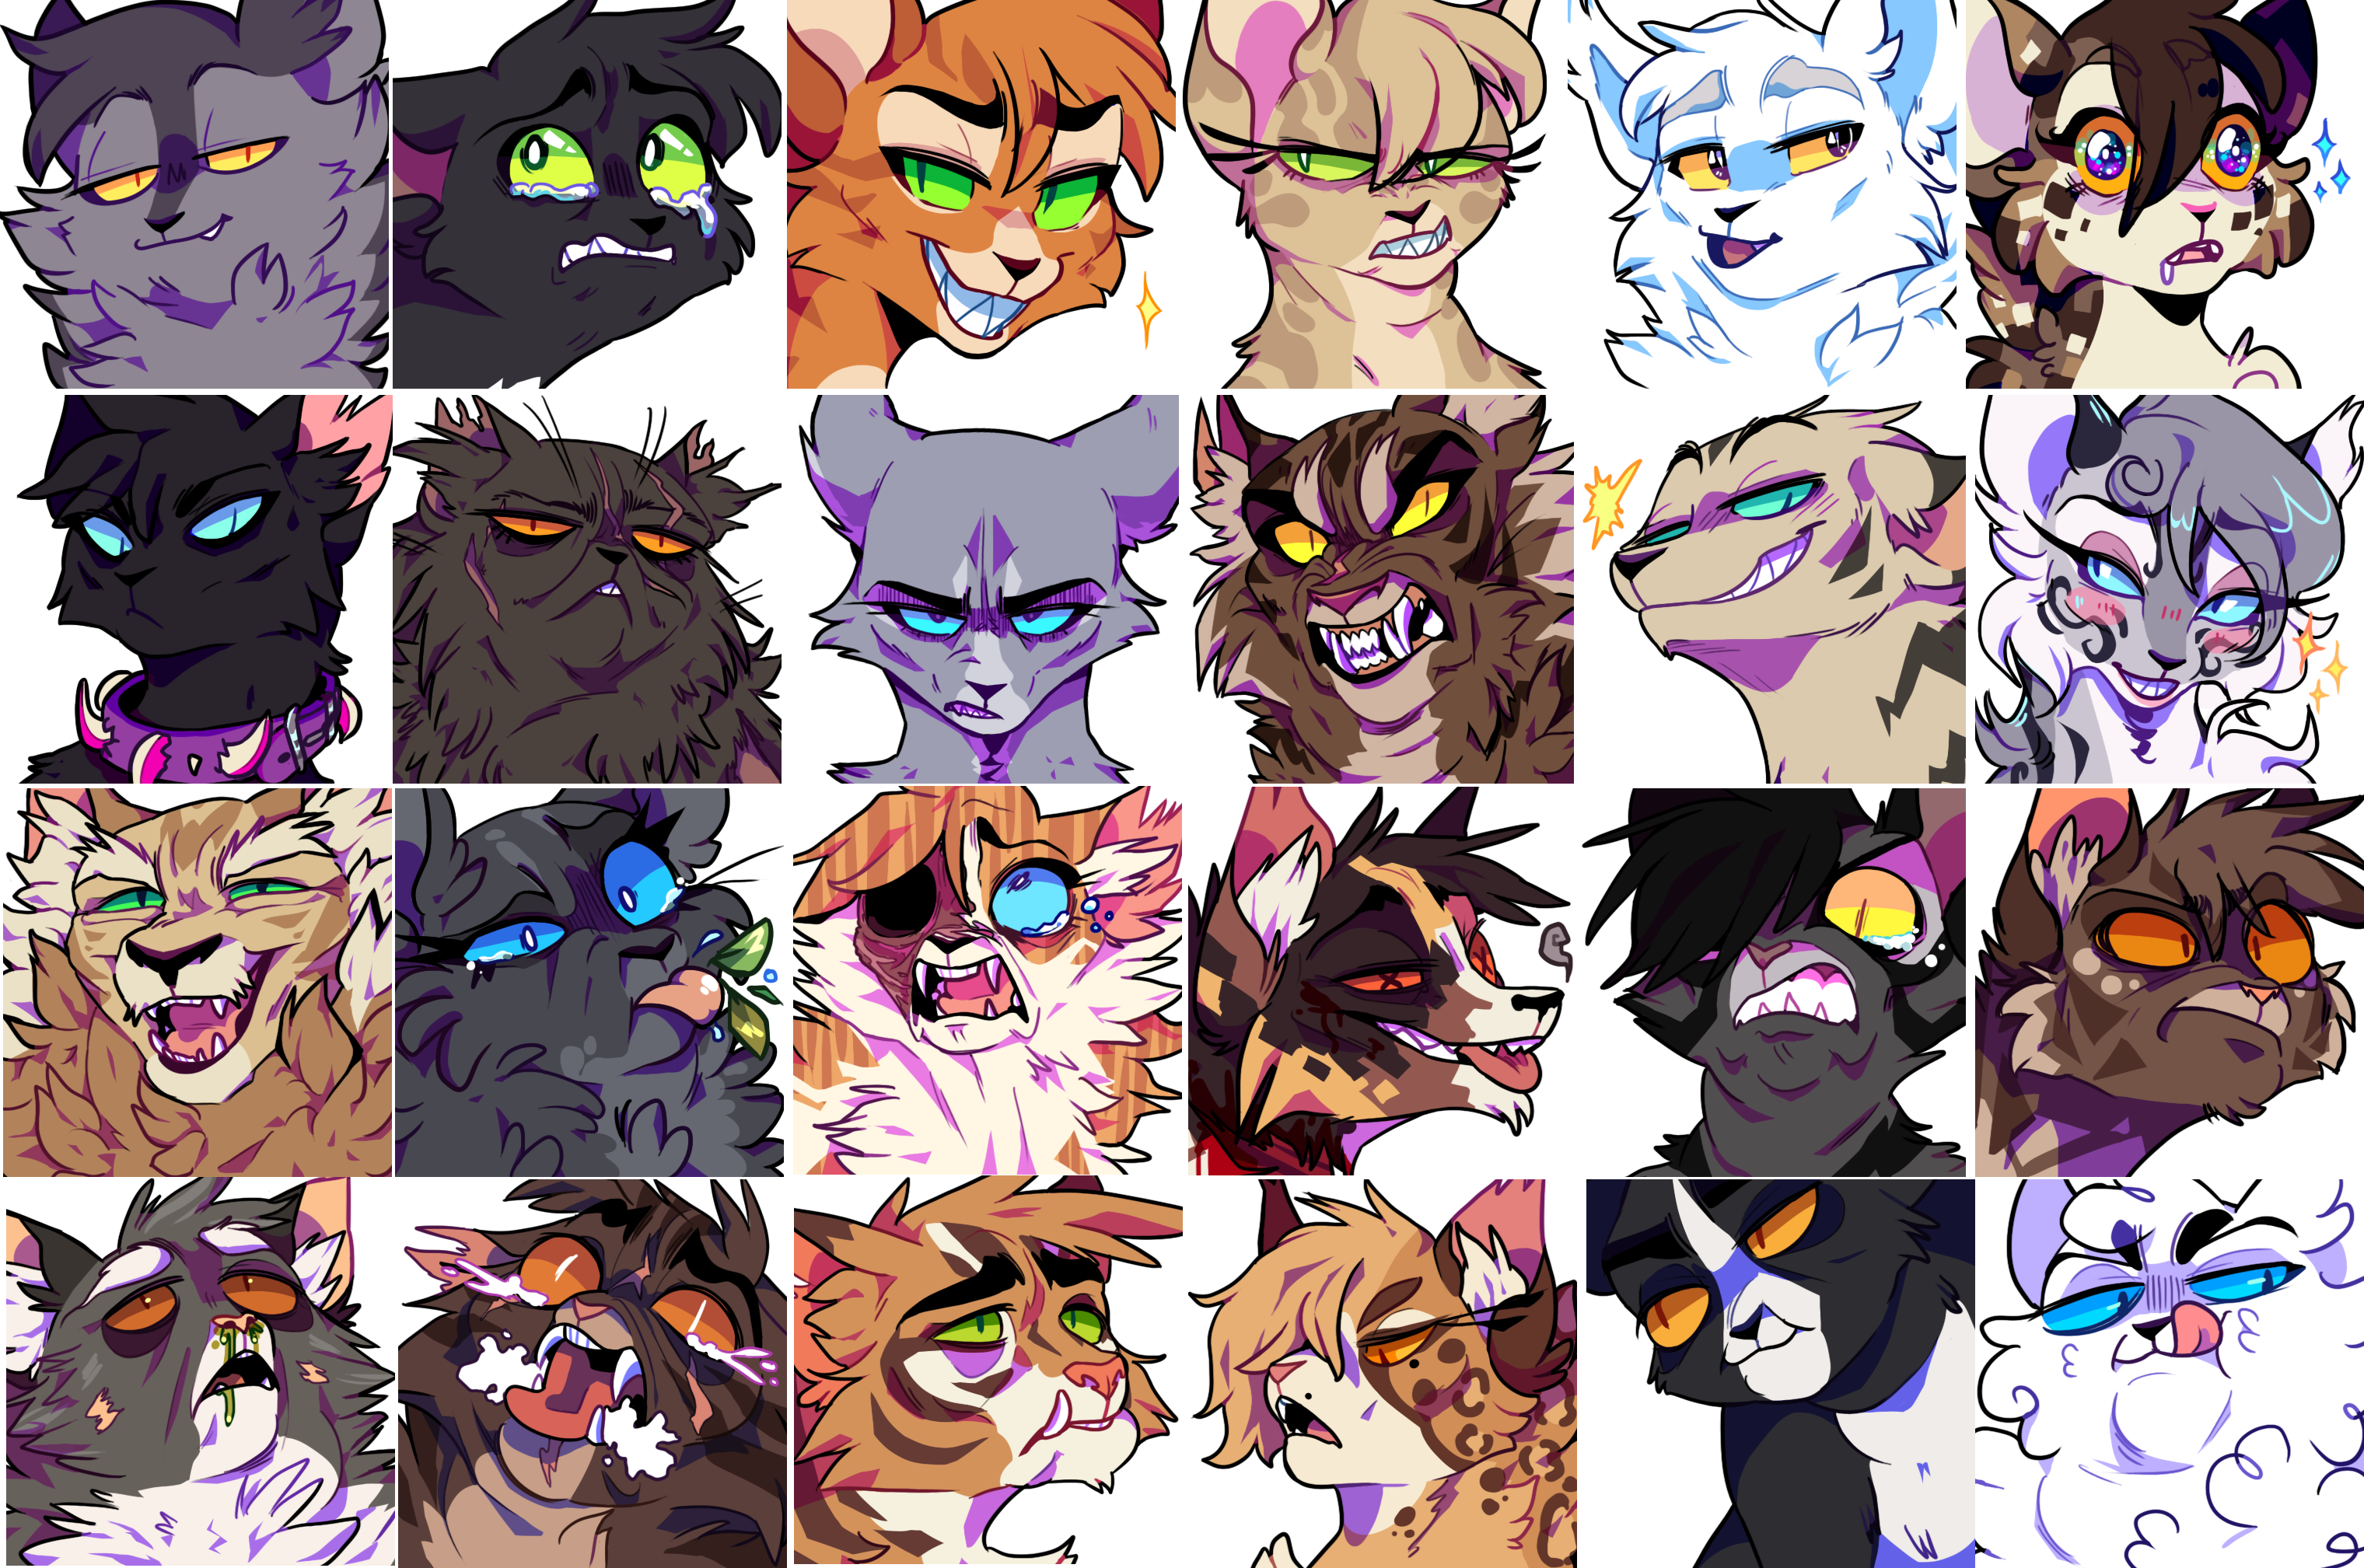 FREE TO USE warrior cats icons by iyd on DeviantArt